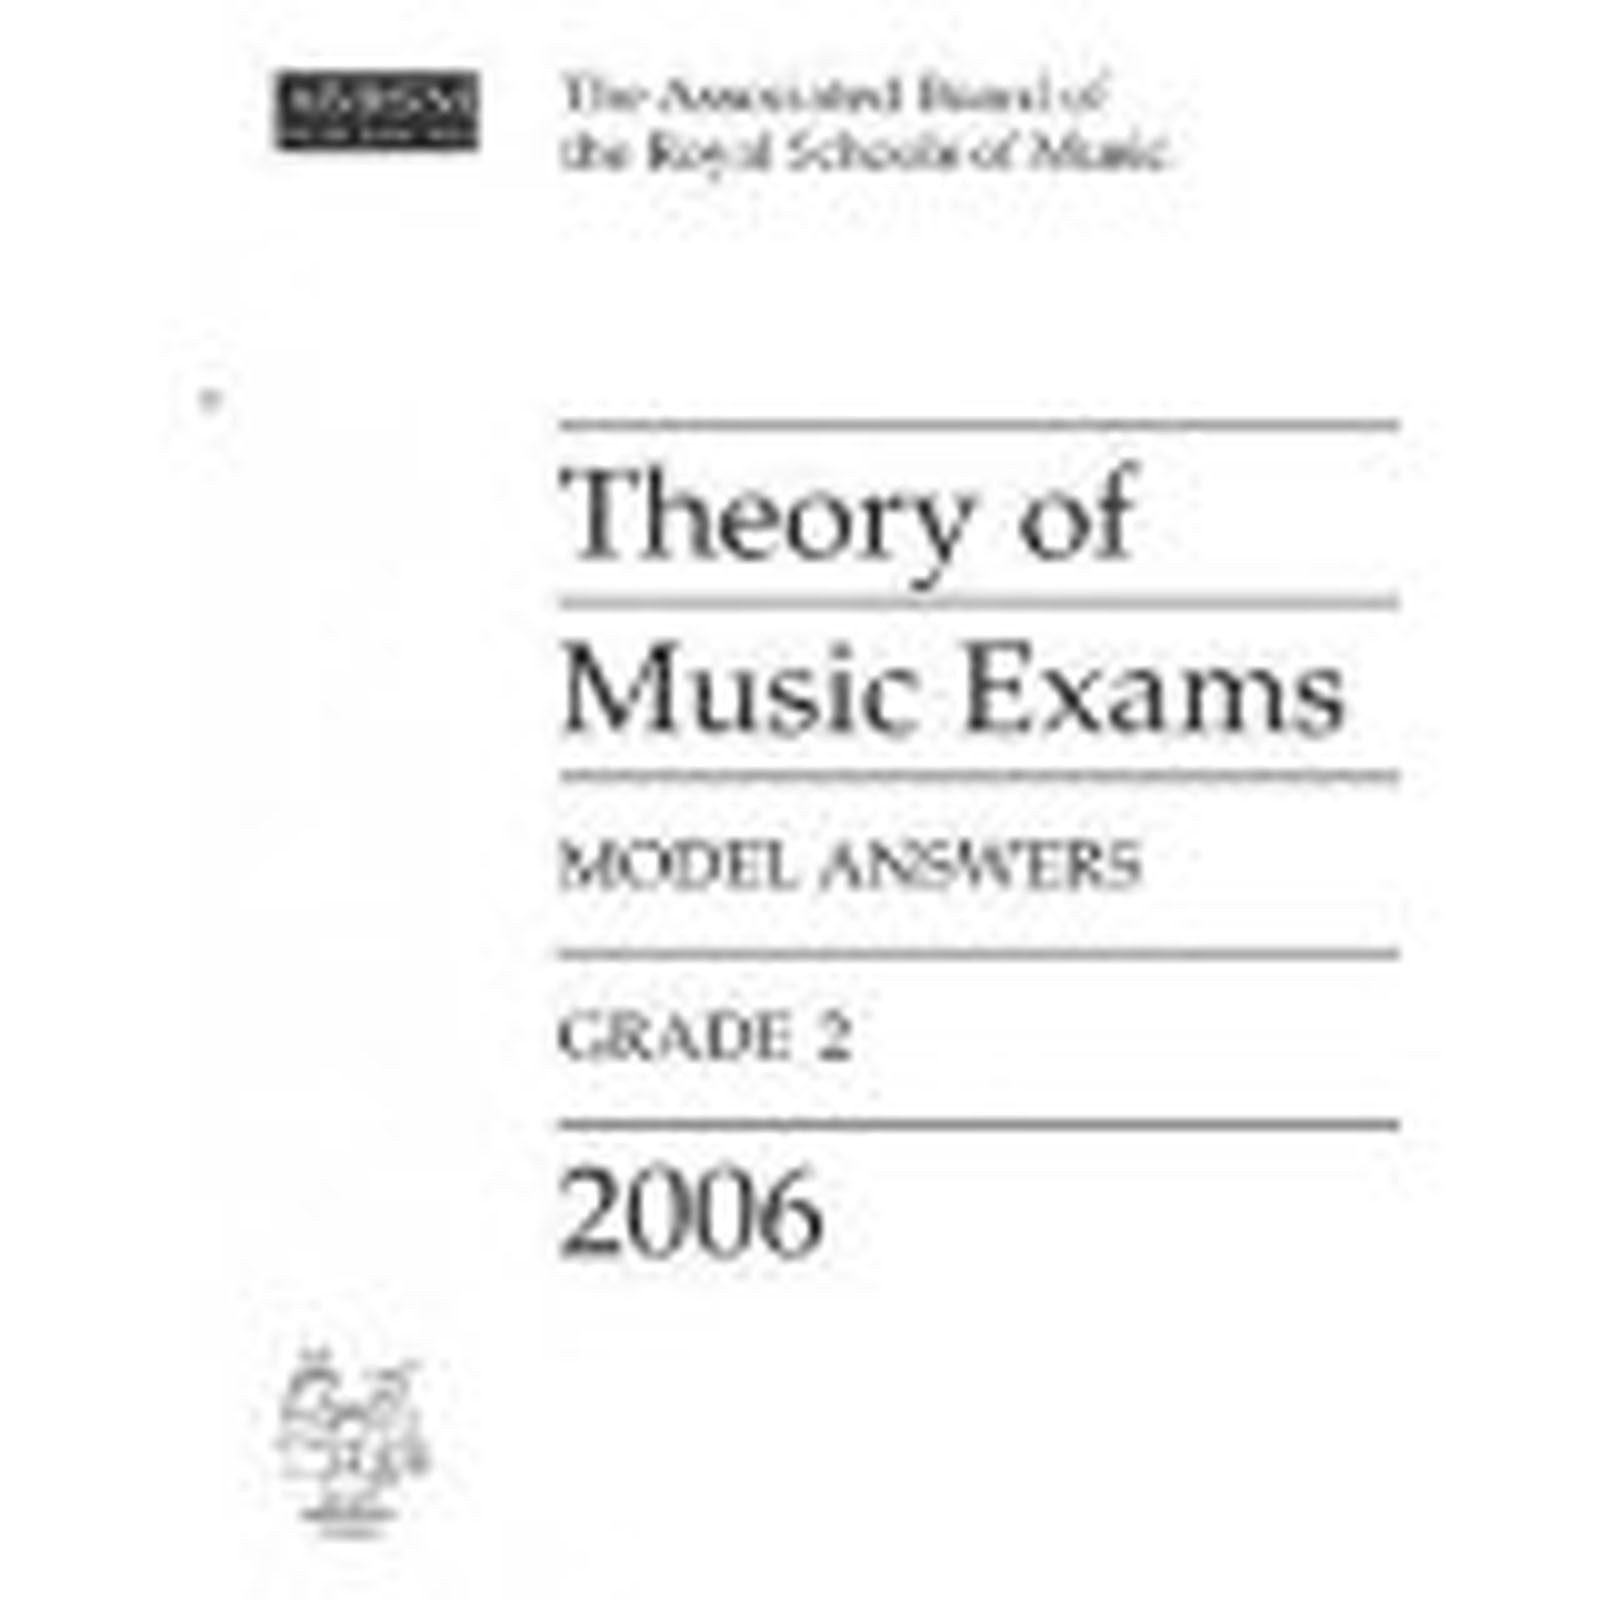 Theory of Music Exams Grade 2 Model Answers 2006 ABRSM Book Prep Book S06